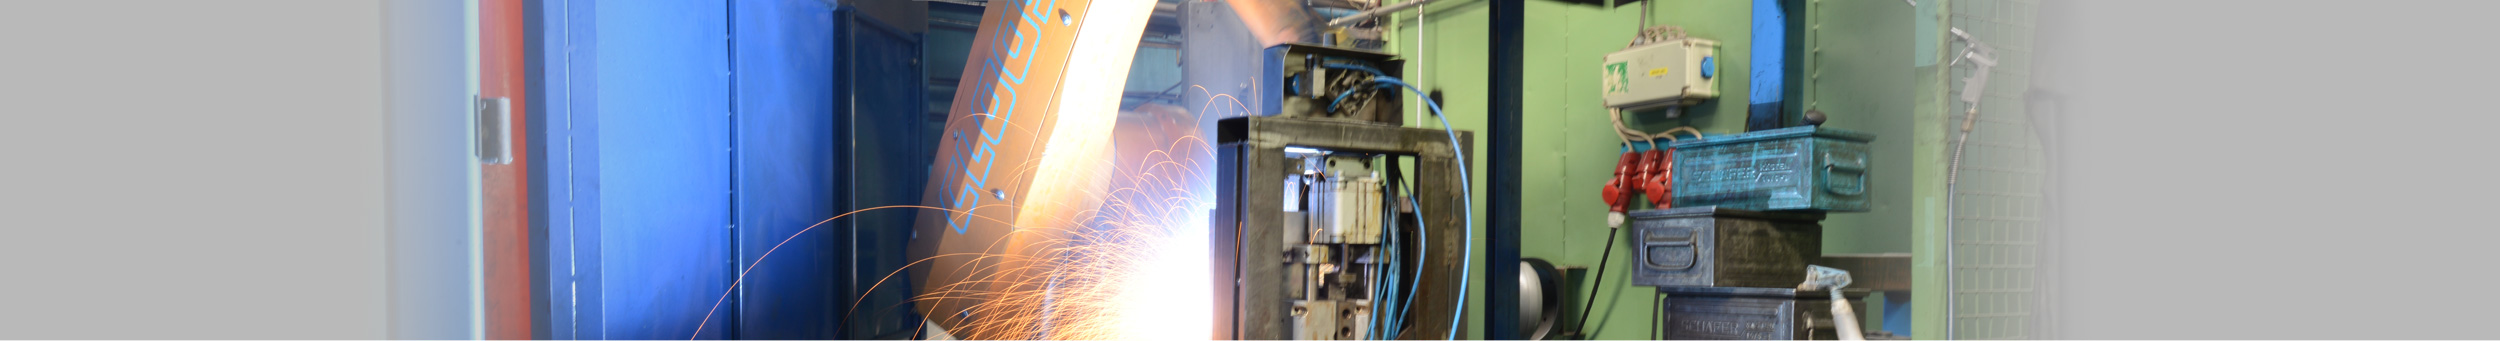 Welding and grinding shop